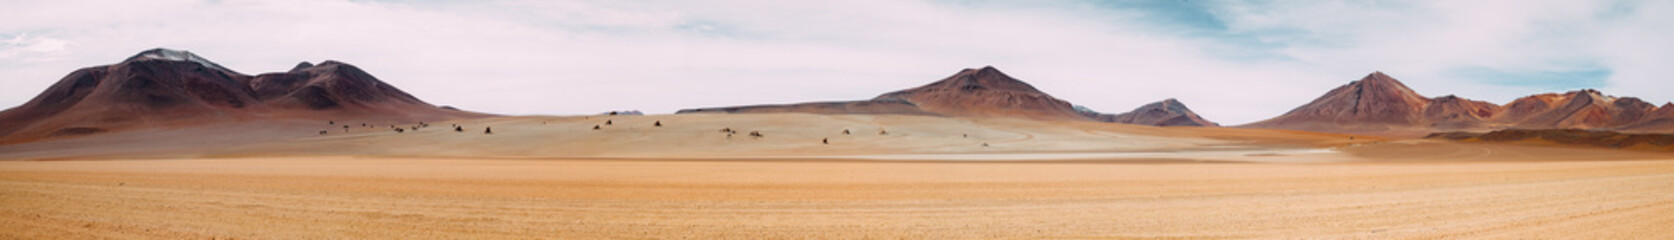 Wall Murals Panorama Photos The vast expanse of nothingness - Atacama Desert - Bolivia